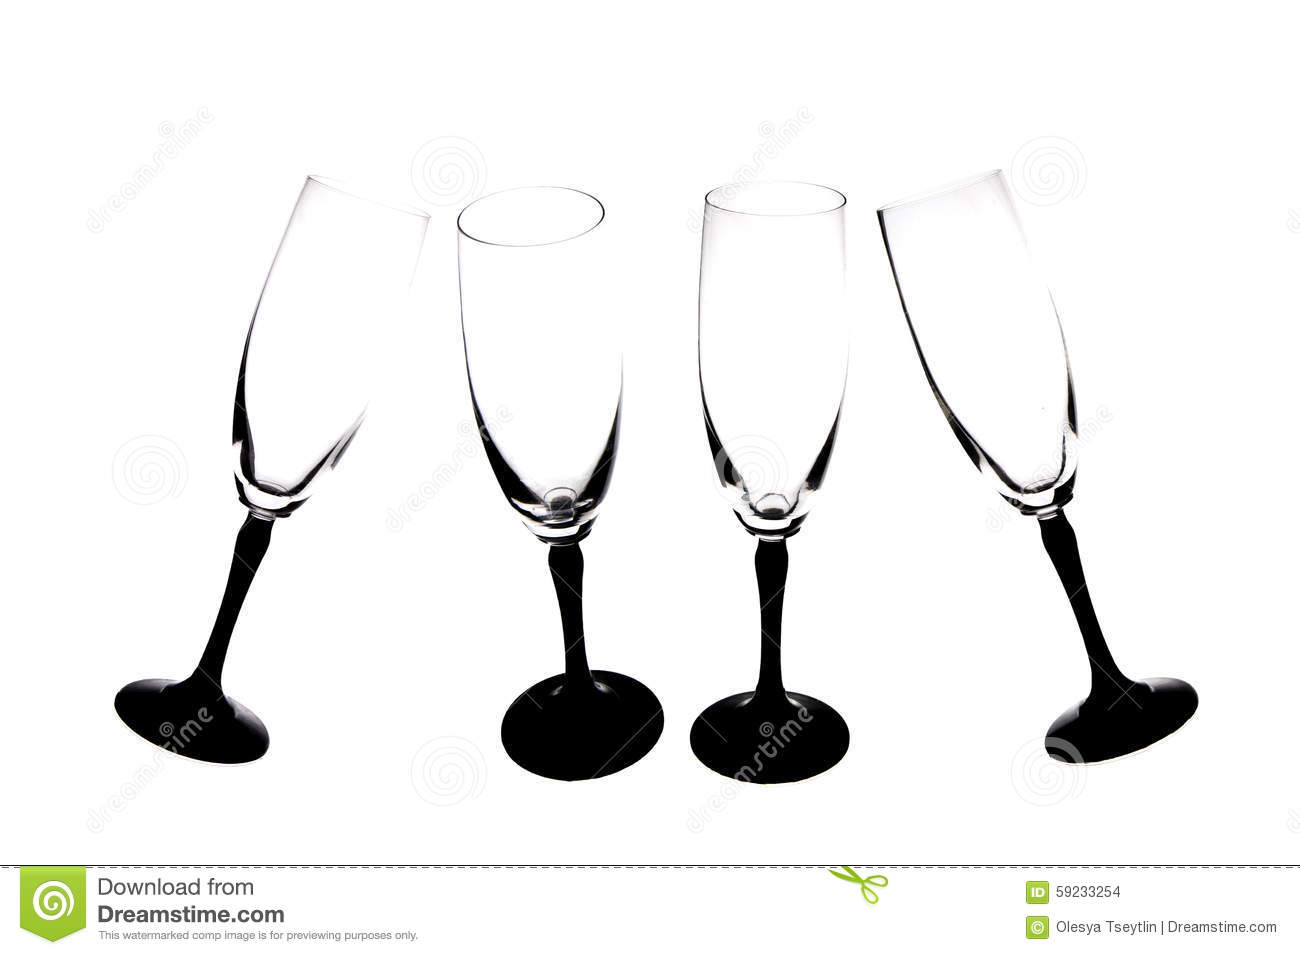 36bea85baf8 Silhouettes Of Champagne Glasses. Stock Photo - Image of tilt ...